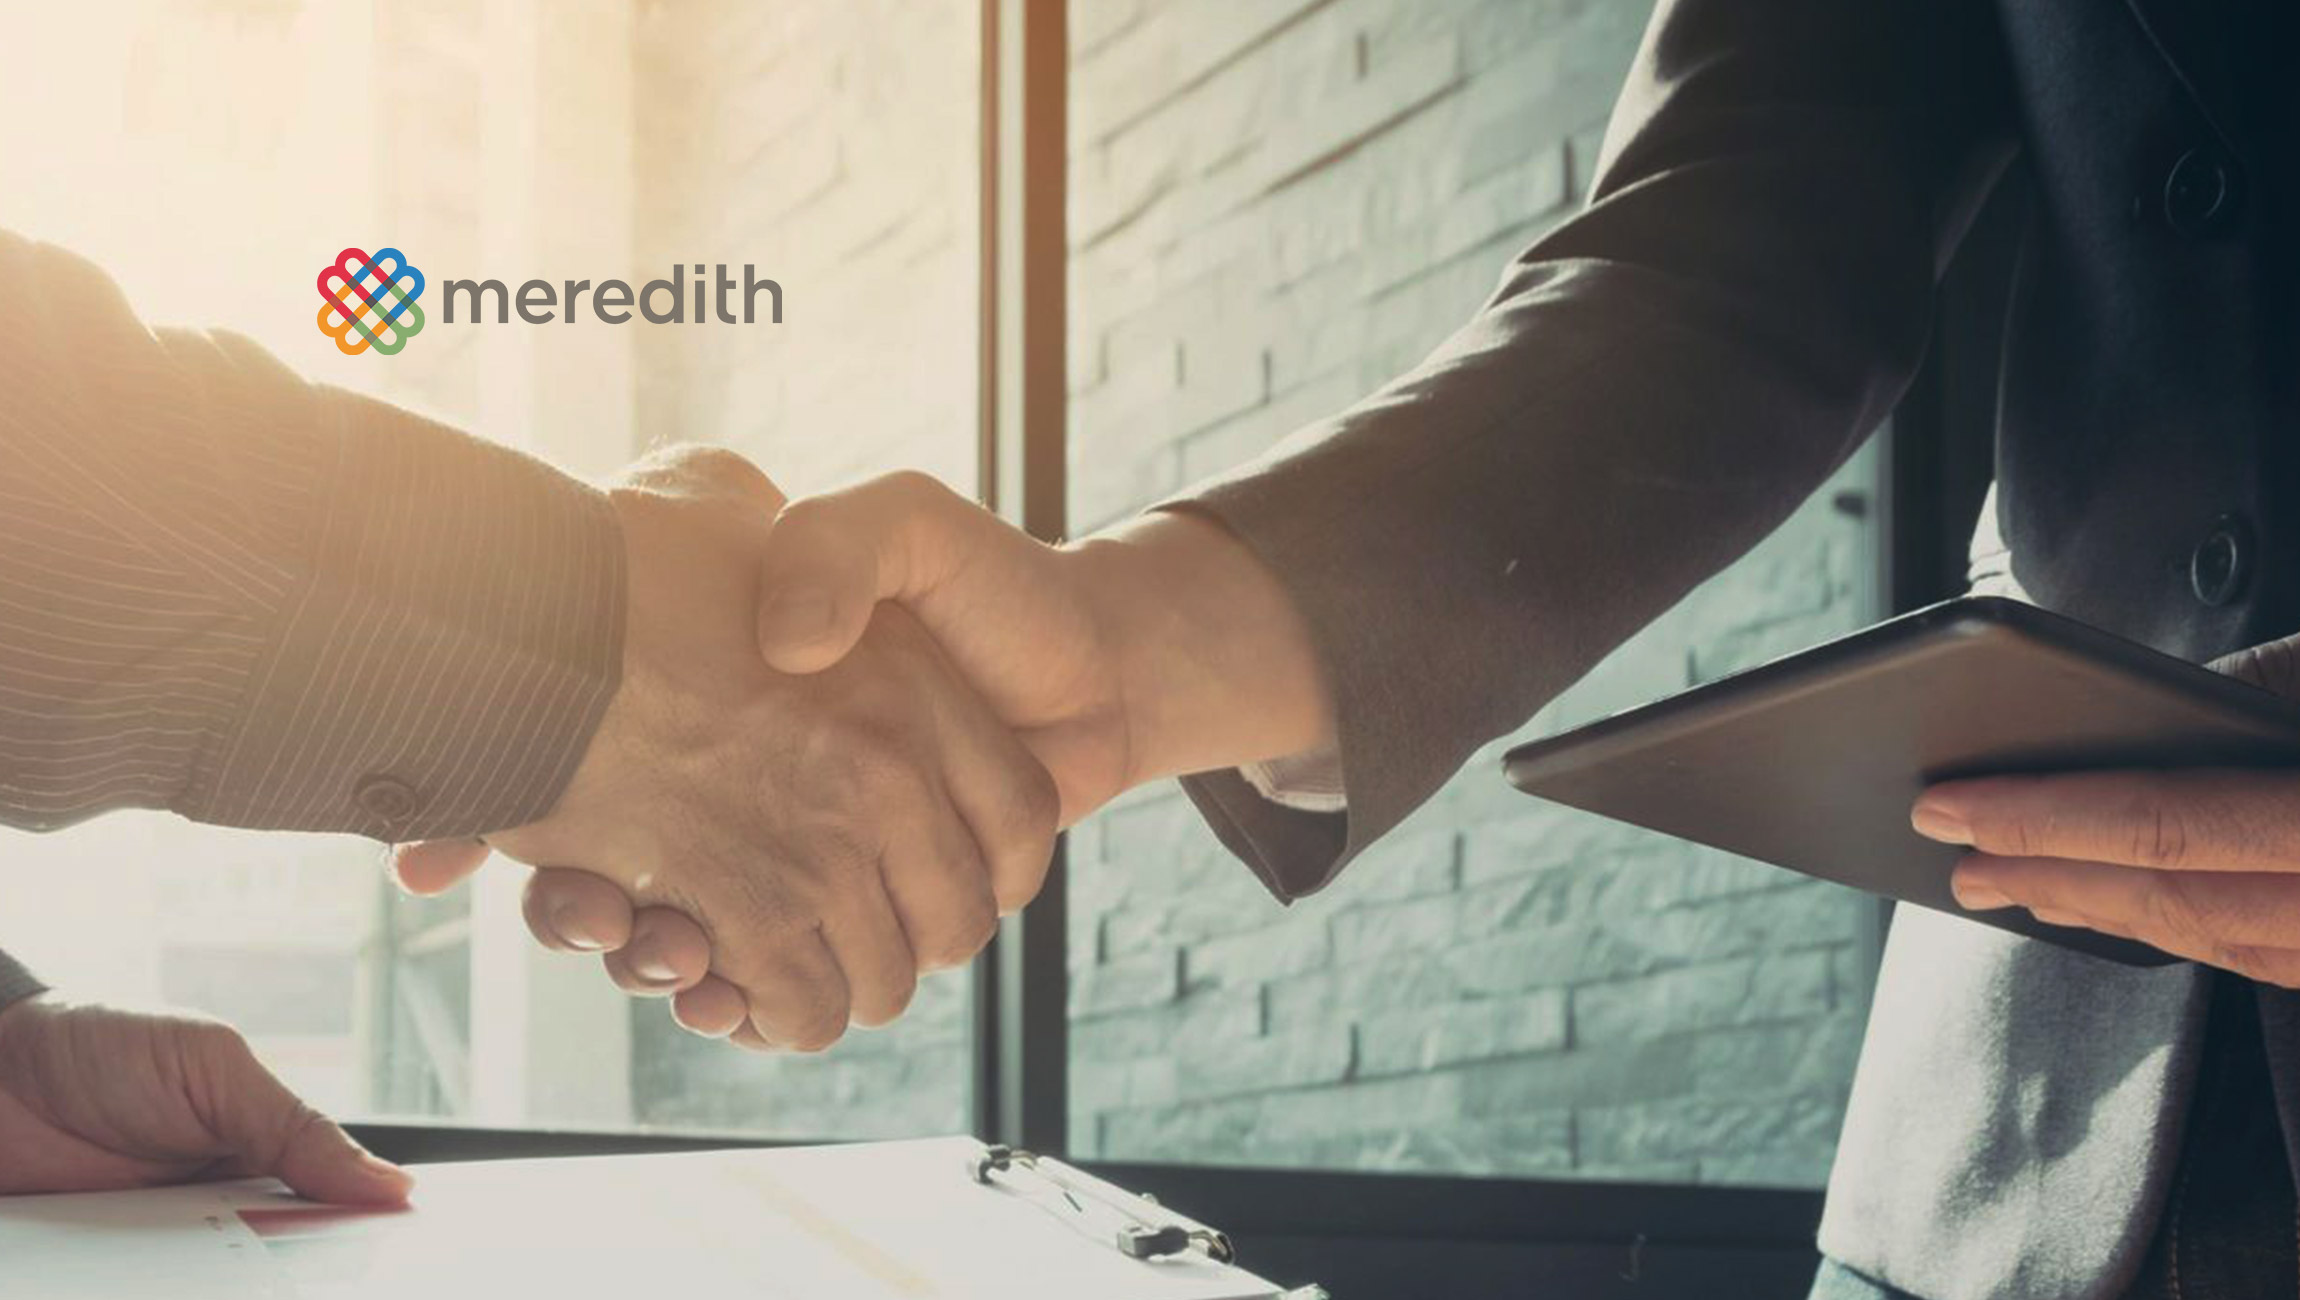 Meredith Corporation Sells Equity Stake In Viant Technology Holding Inc.